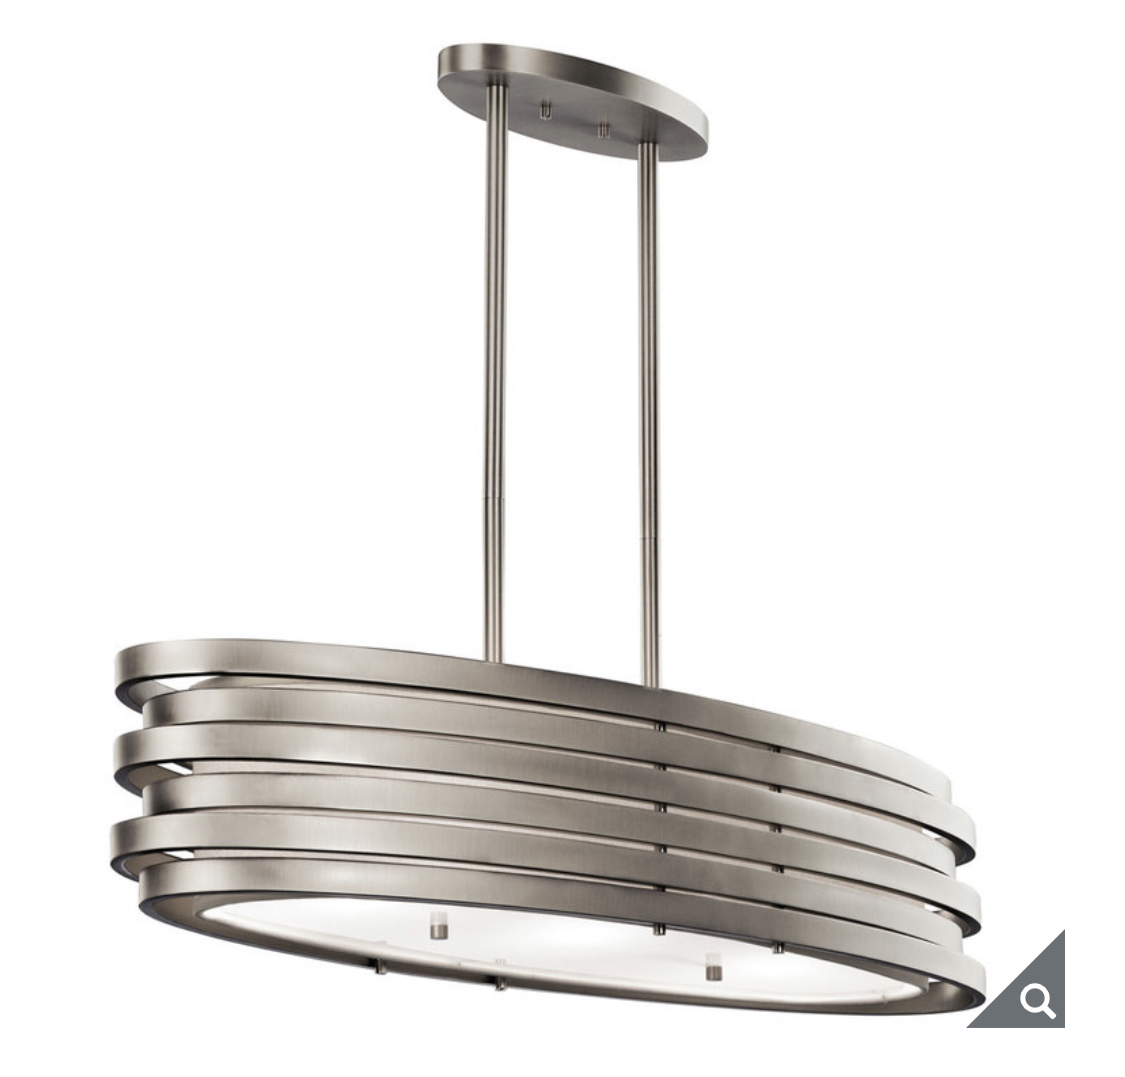 Kichler Roswell Three Light Oval Island Pendant Ceiling Light in Brushed Nickel